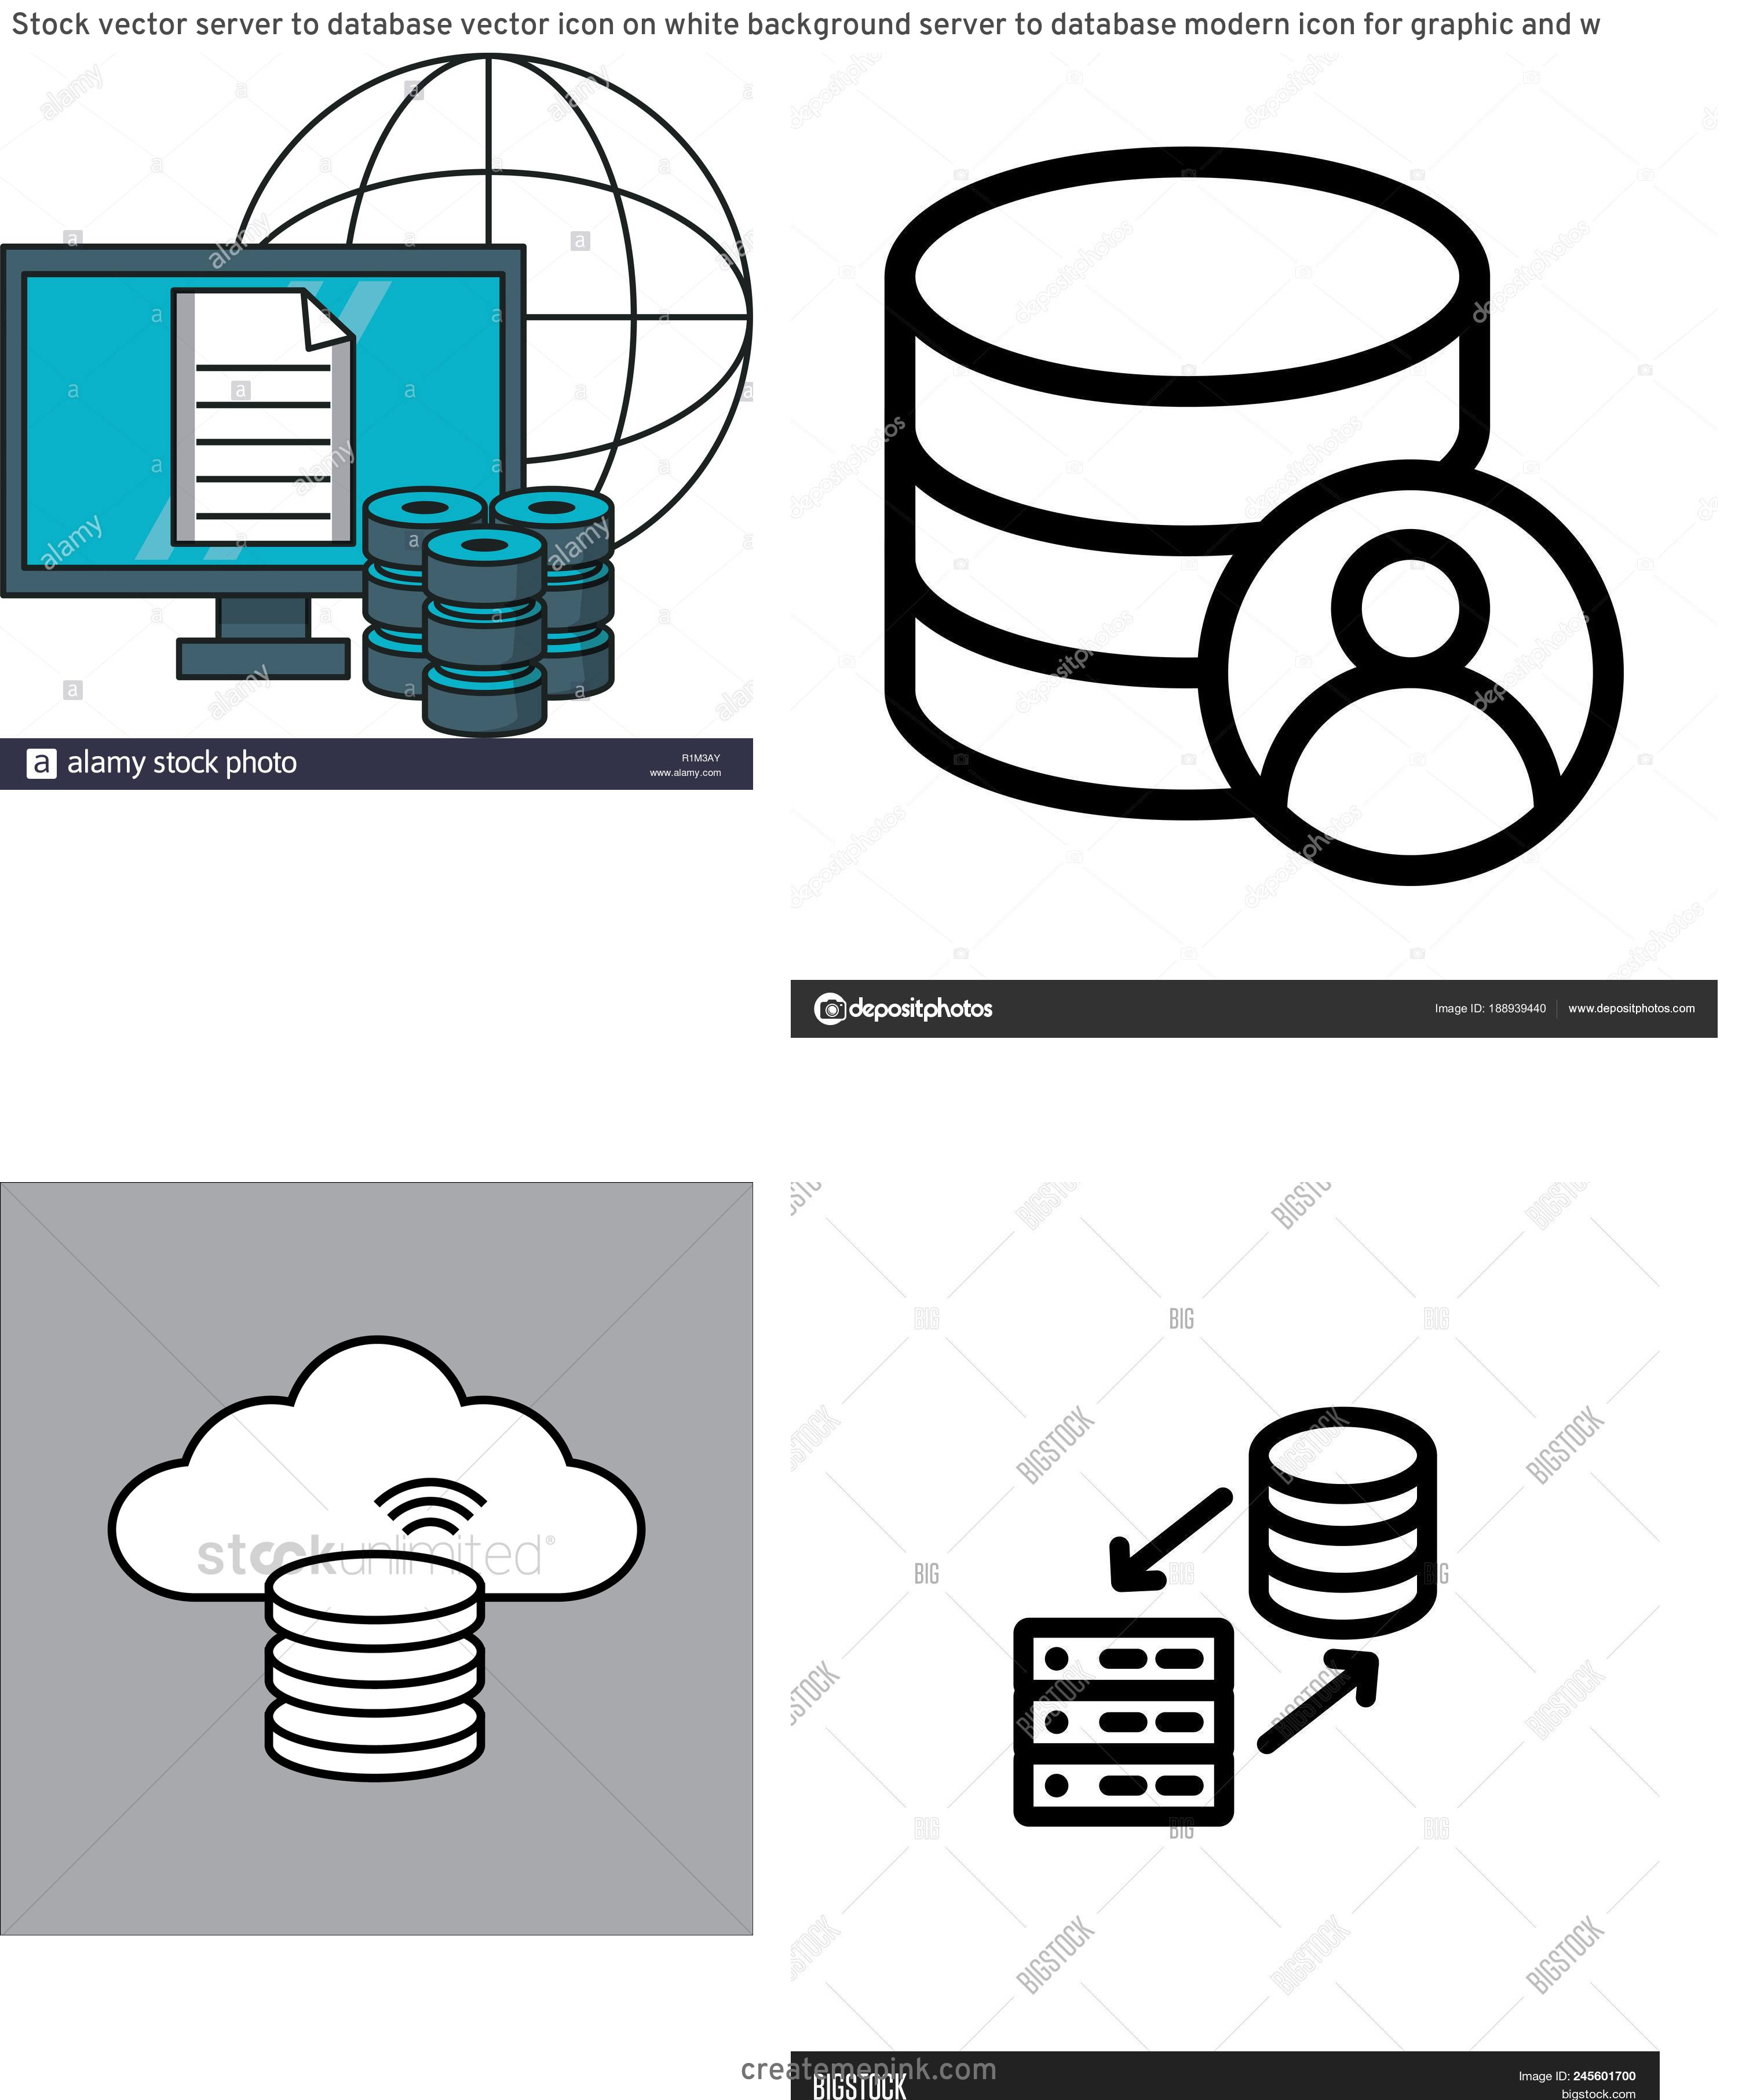 Database Vector Art: Stock Vector Server To Database Vector Icon On White Background Server To Database Modern Icon For Graphic And W